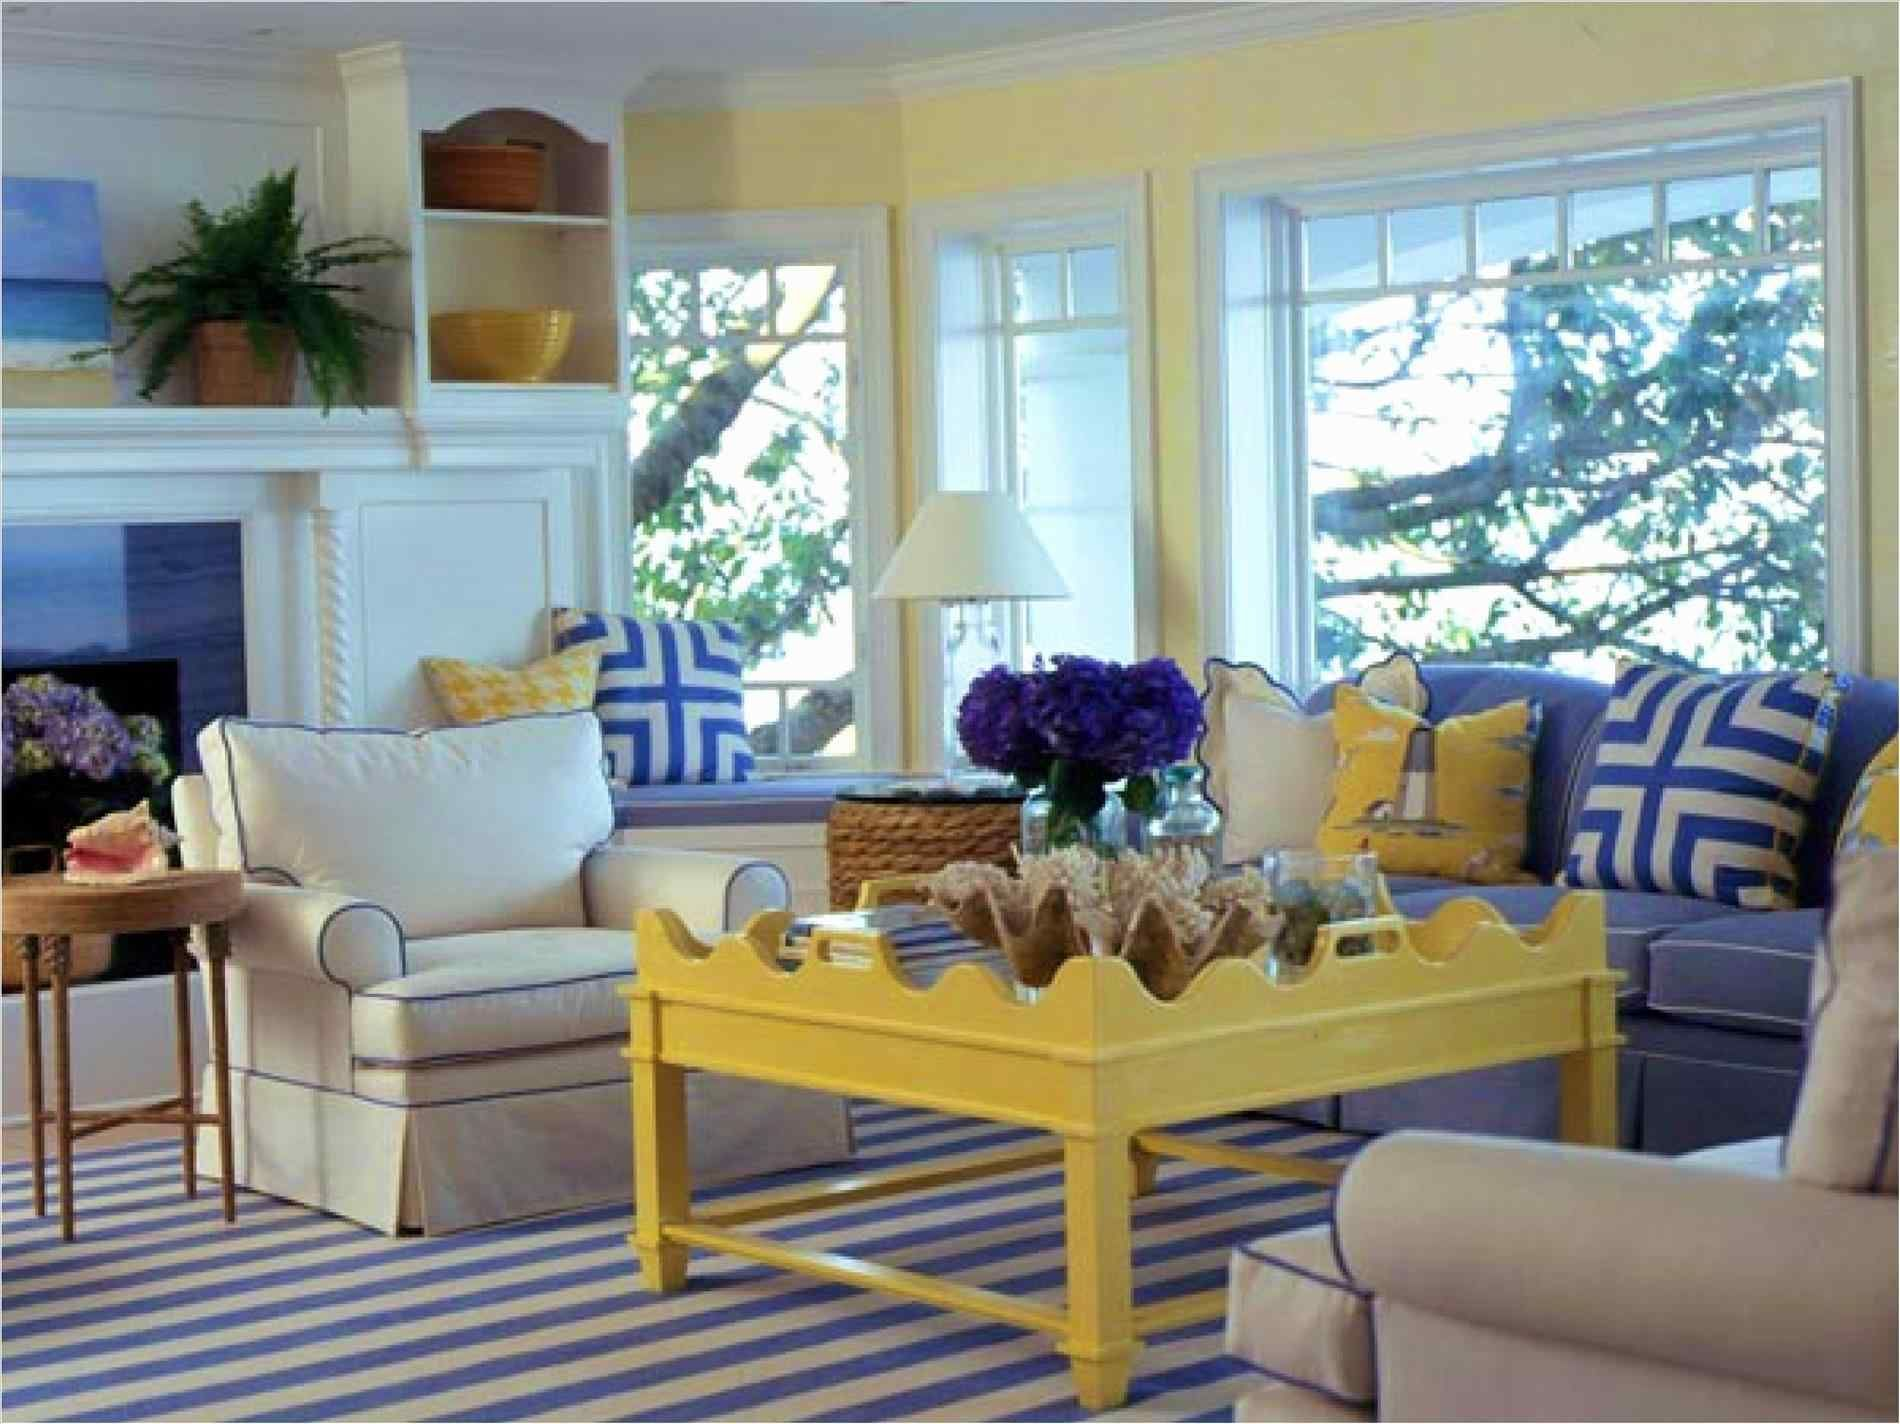 14 Incredible Navy Blue And Cream Living Room Ideas Breakpr